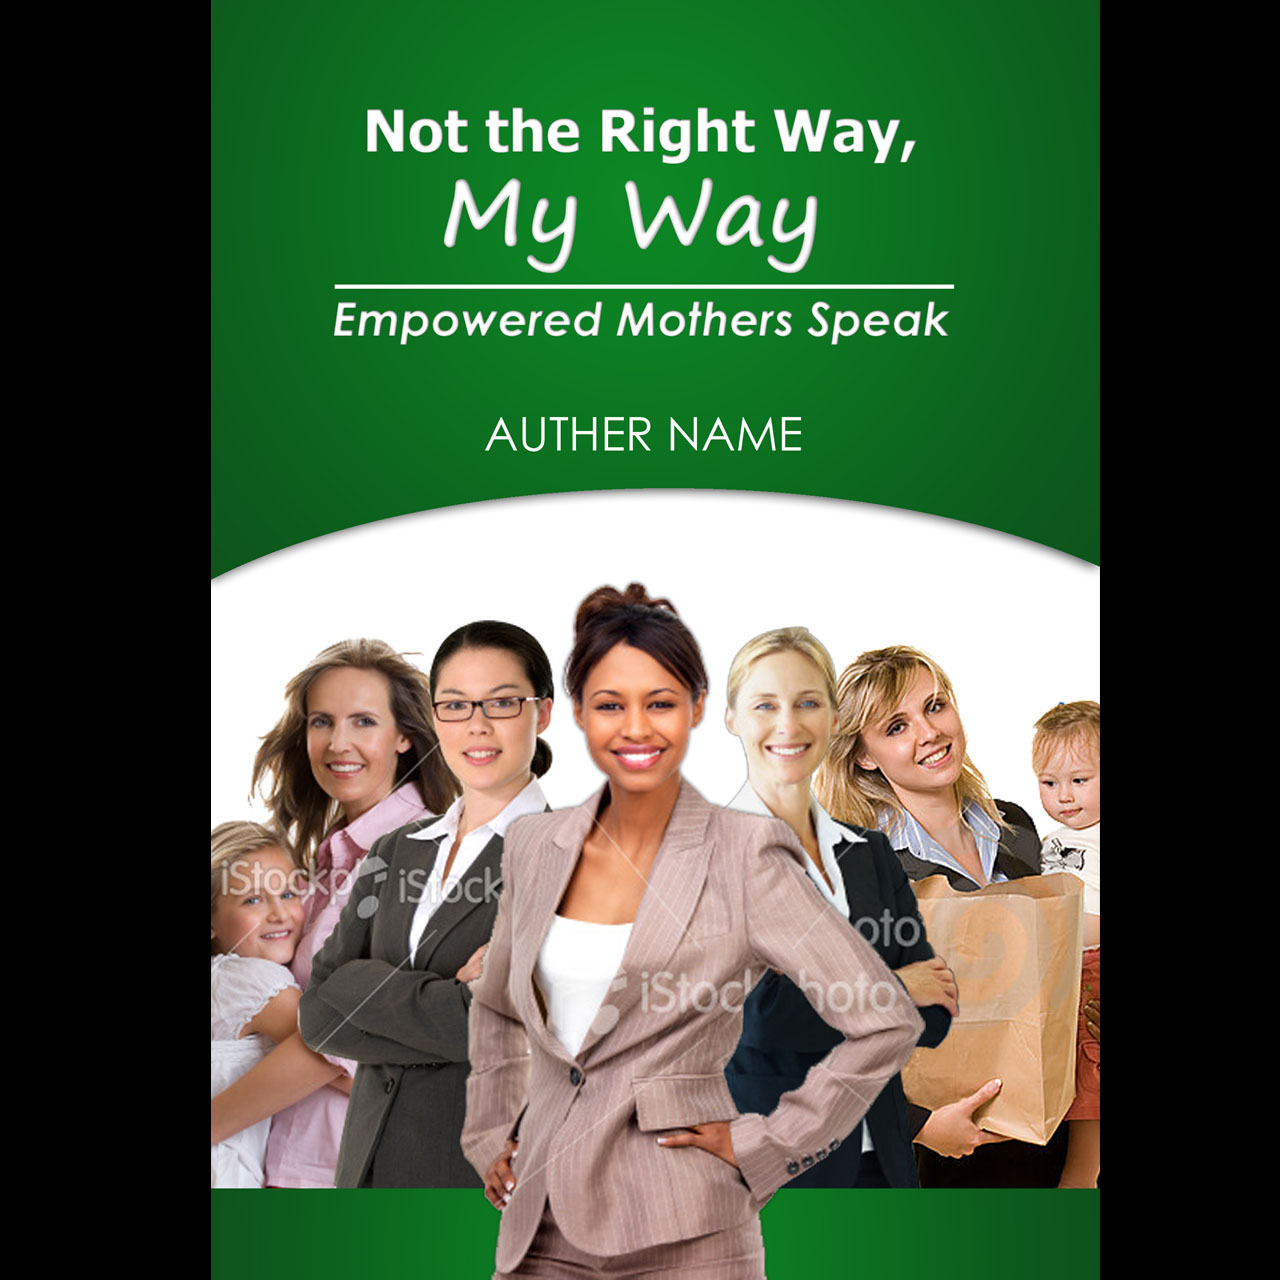 Book Cover Design by zani - Entry No. 11 in the Book Cover Design Contest Not the Right Way, My Way: Empowered Mothers  Speak.